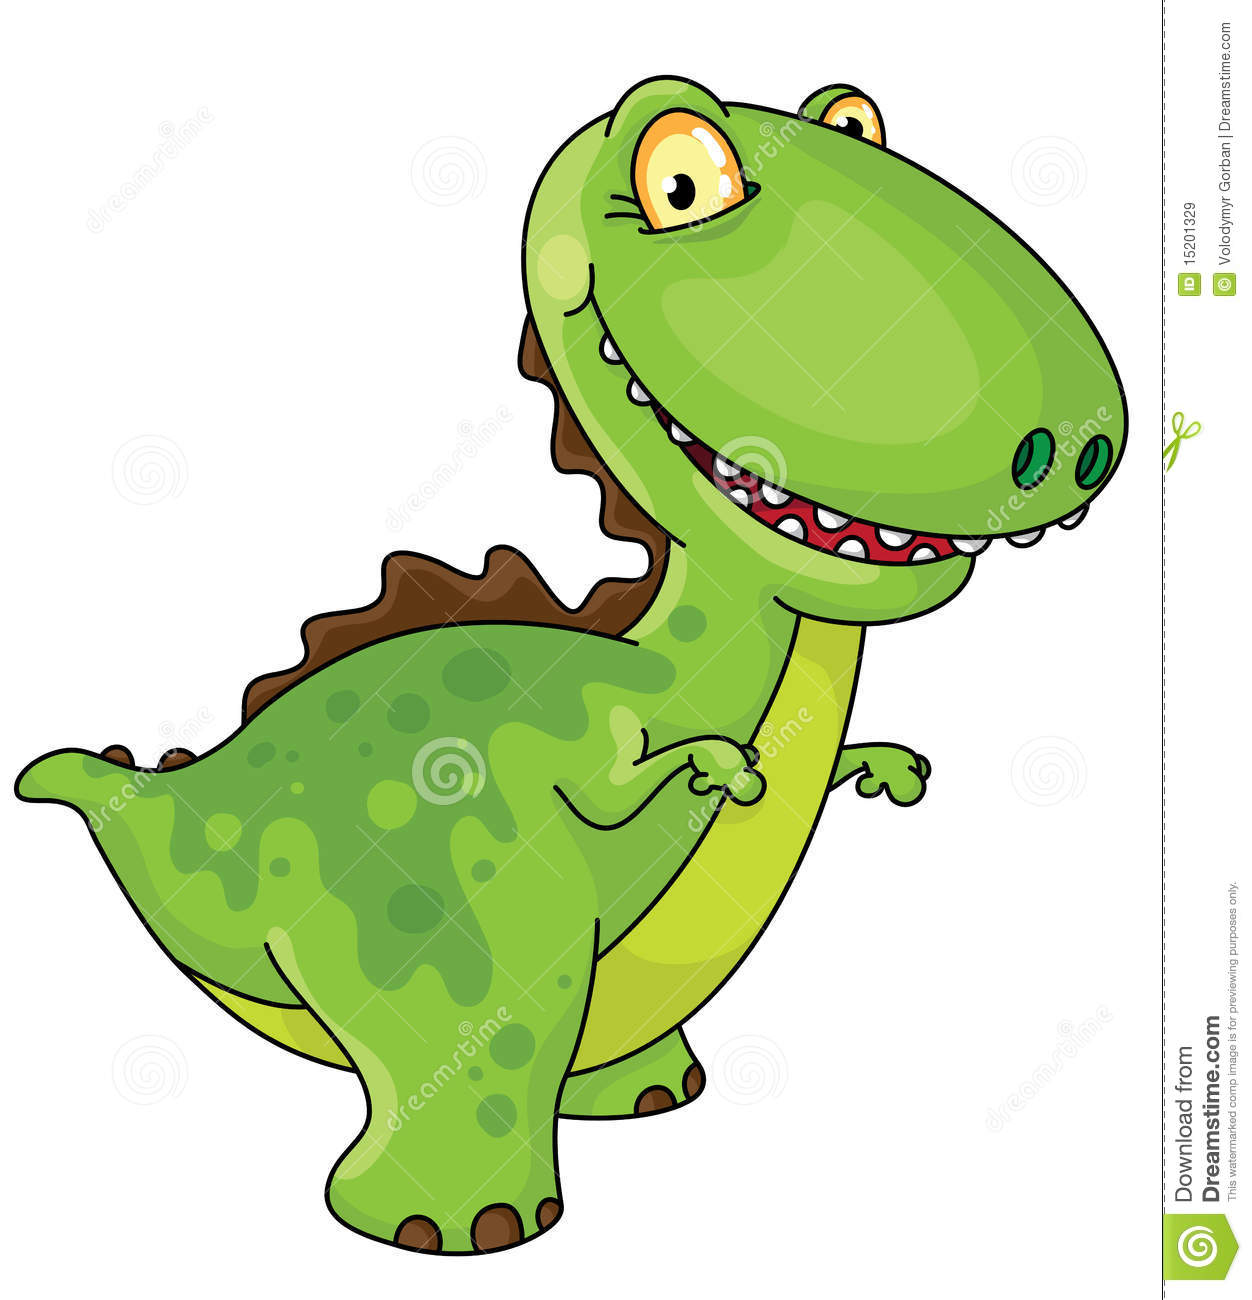 laughing dinosaur royalty free stock images image 15201329 Squirrel Clip Art weasel clipart free